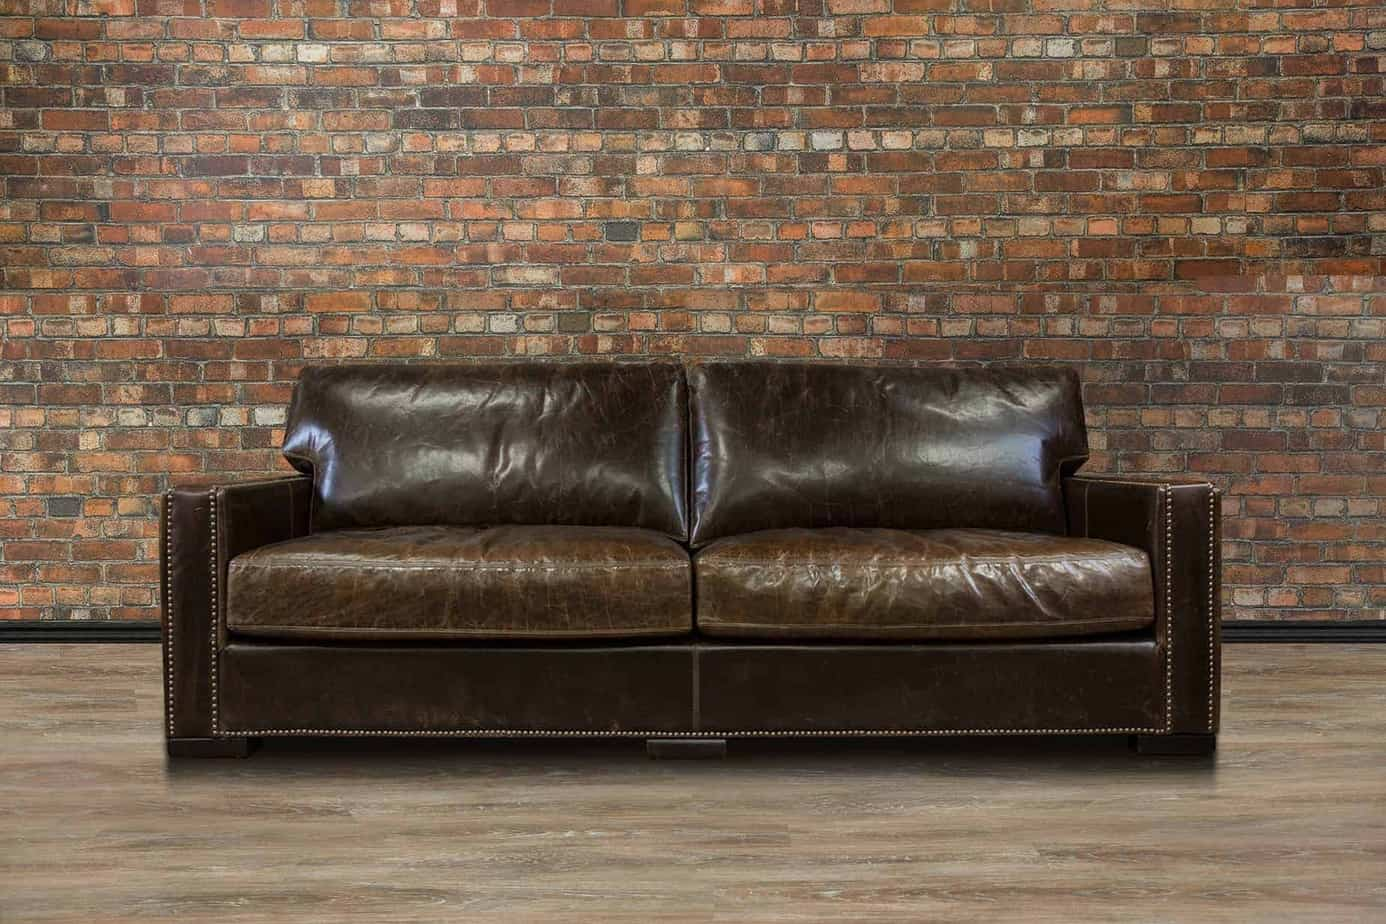 Gentil CHARTWELL_Collection_Sofa · CHARTWELL_Collection_Sofa. Previous; Next.  Previous; Next. Chartwell Regular Deep Seat Leather Sofa